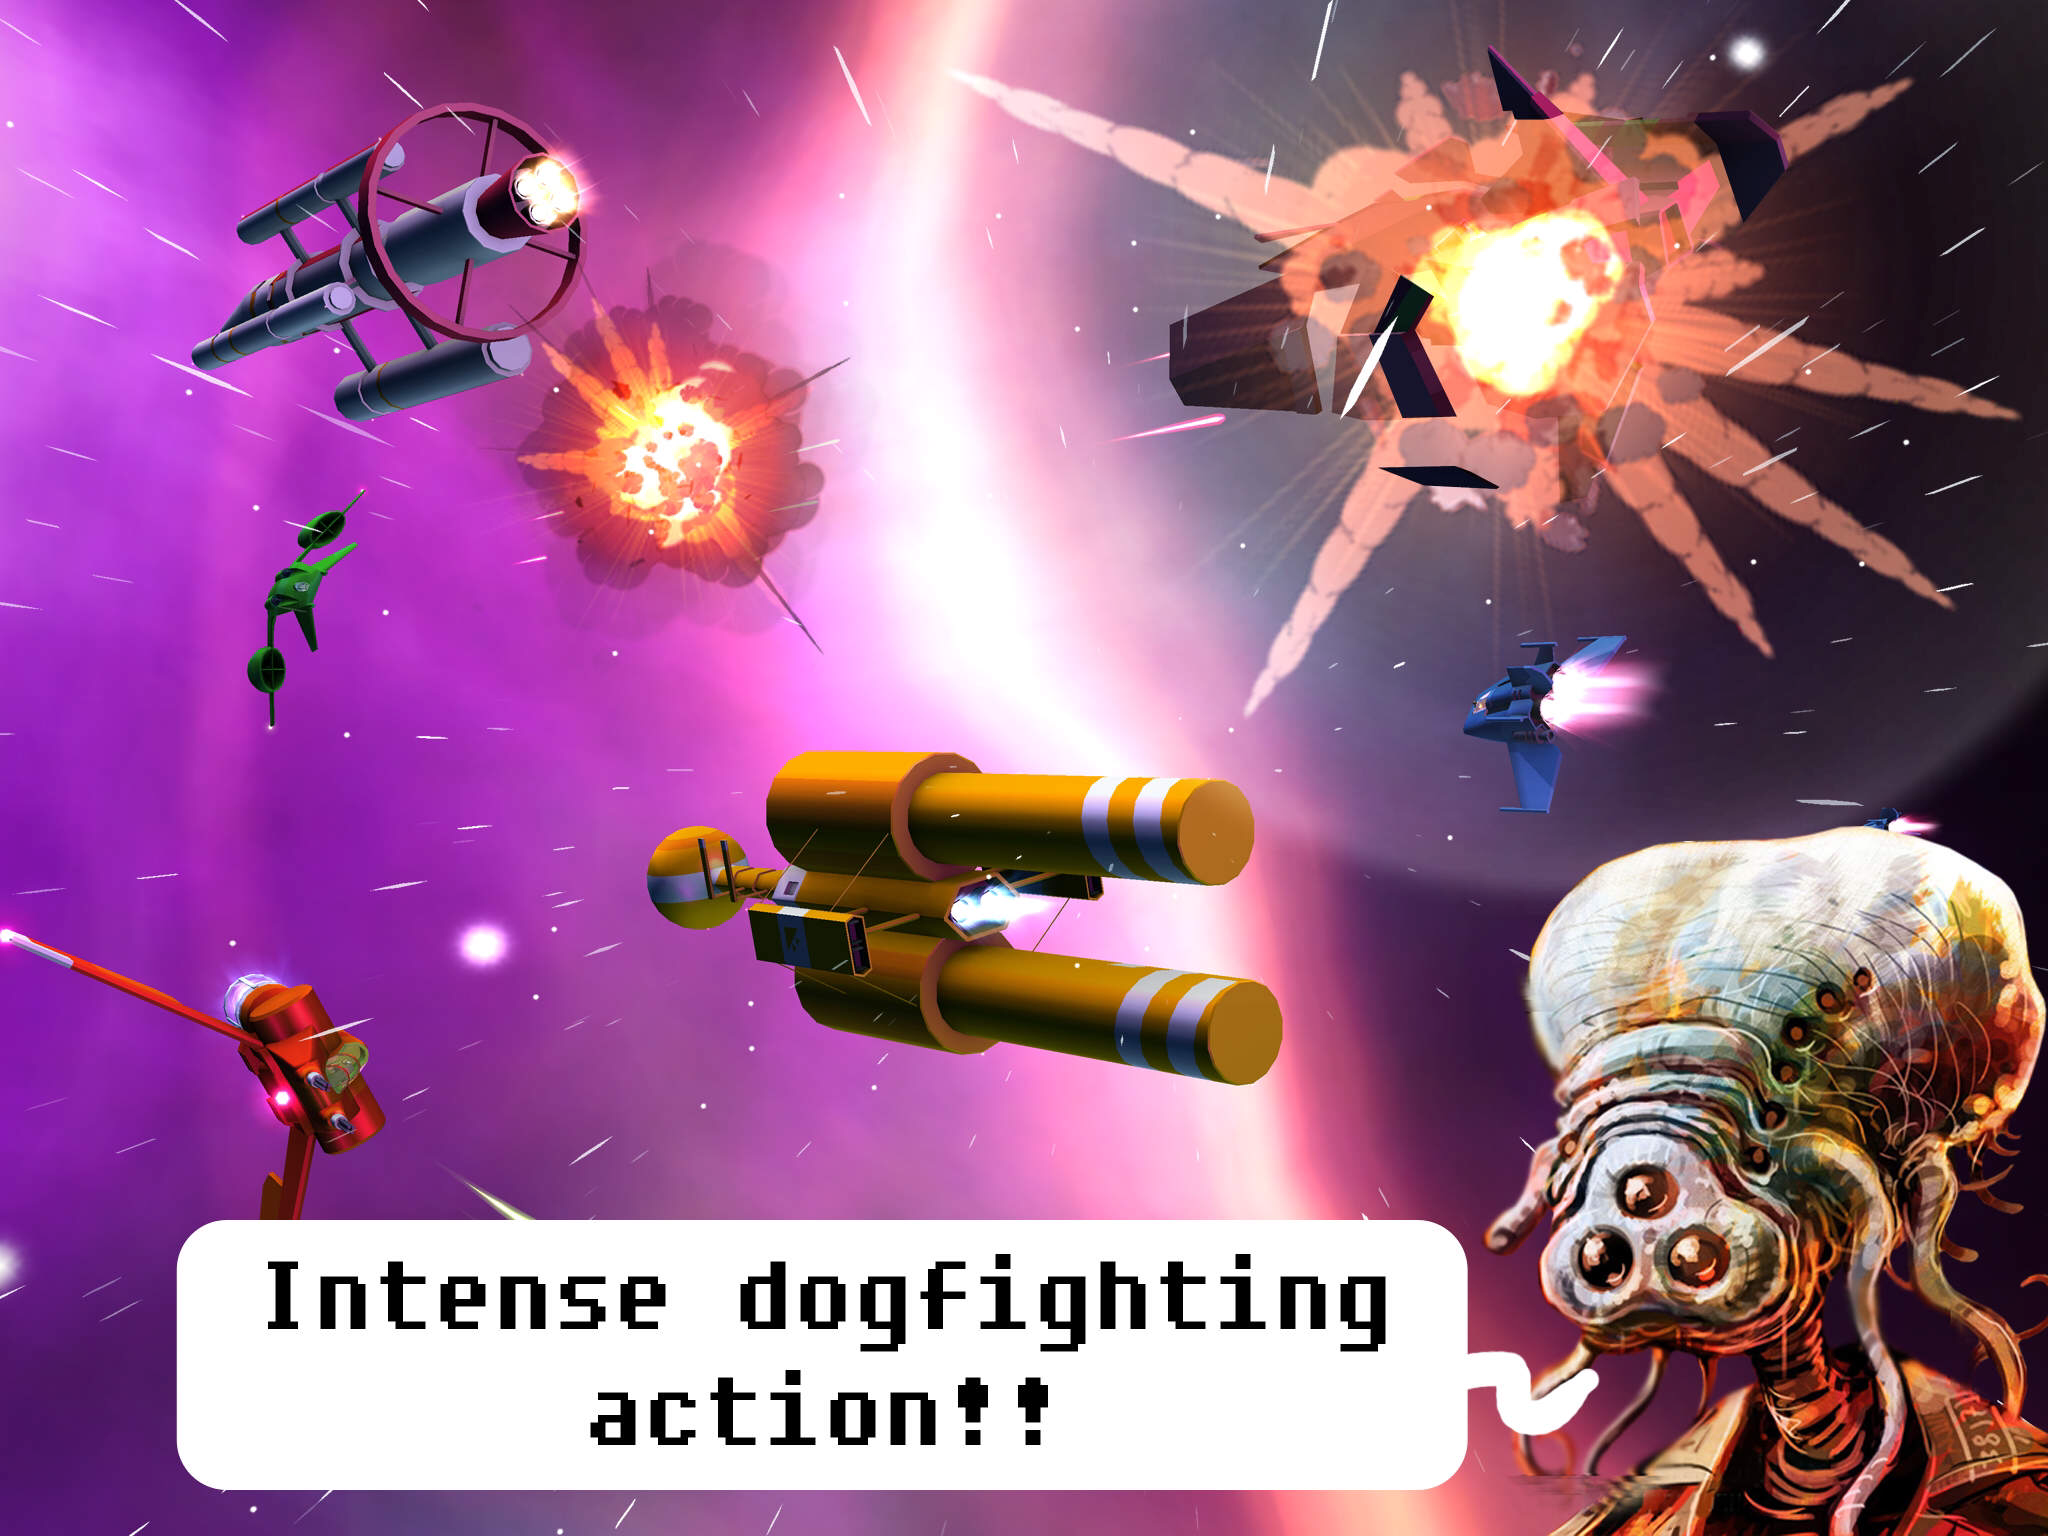 Rogue Star is an intense, close-up space brawler that's just launched on iOS